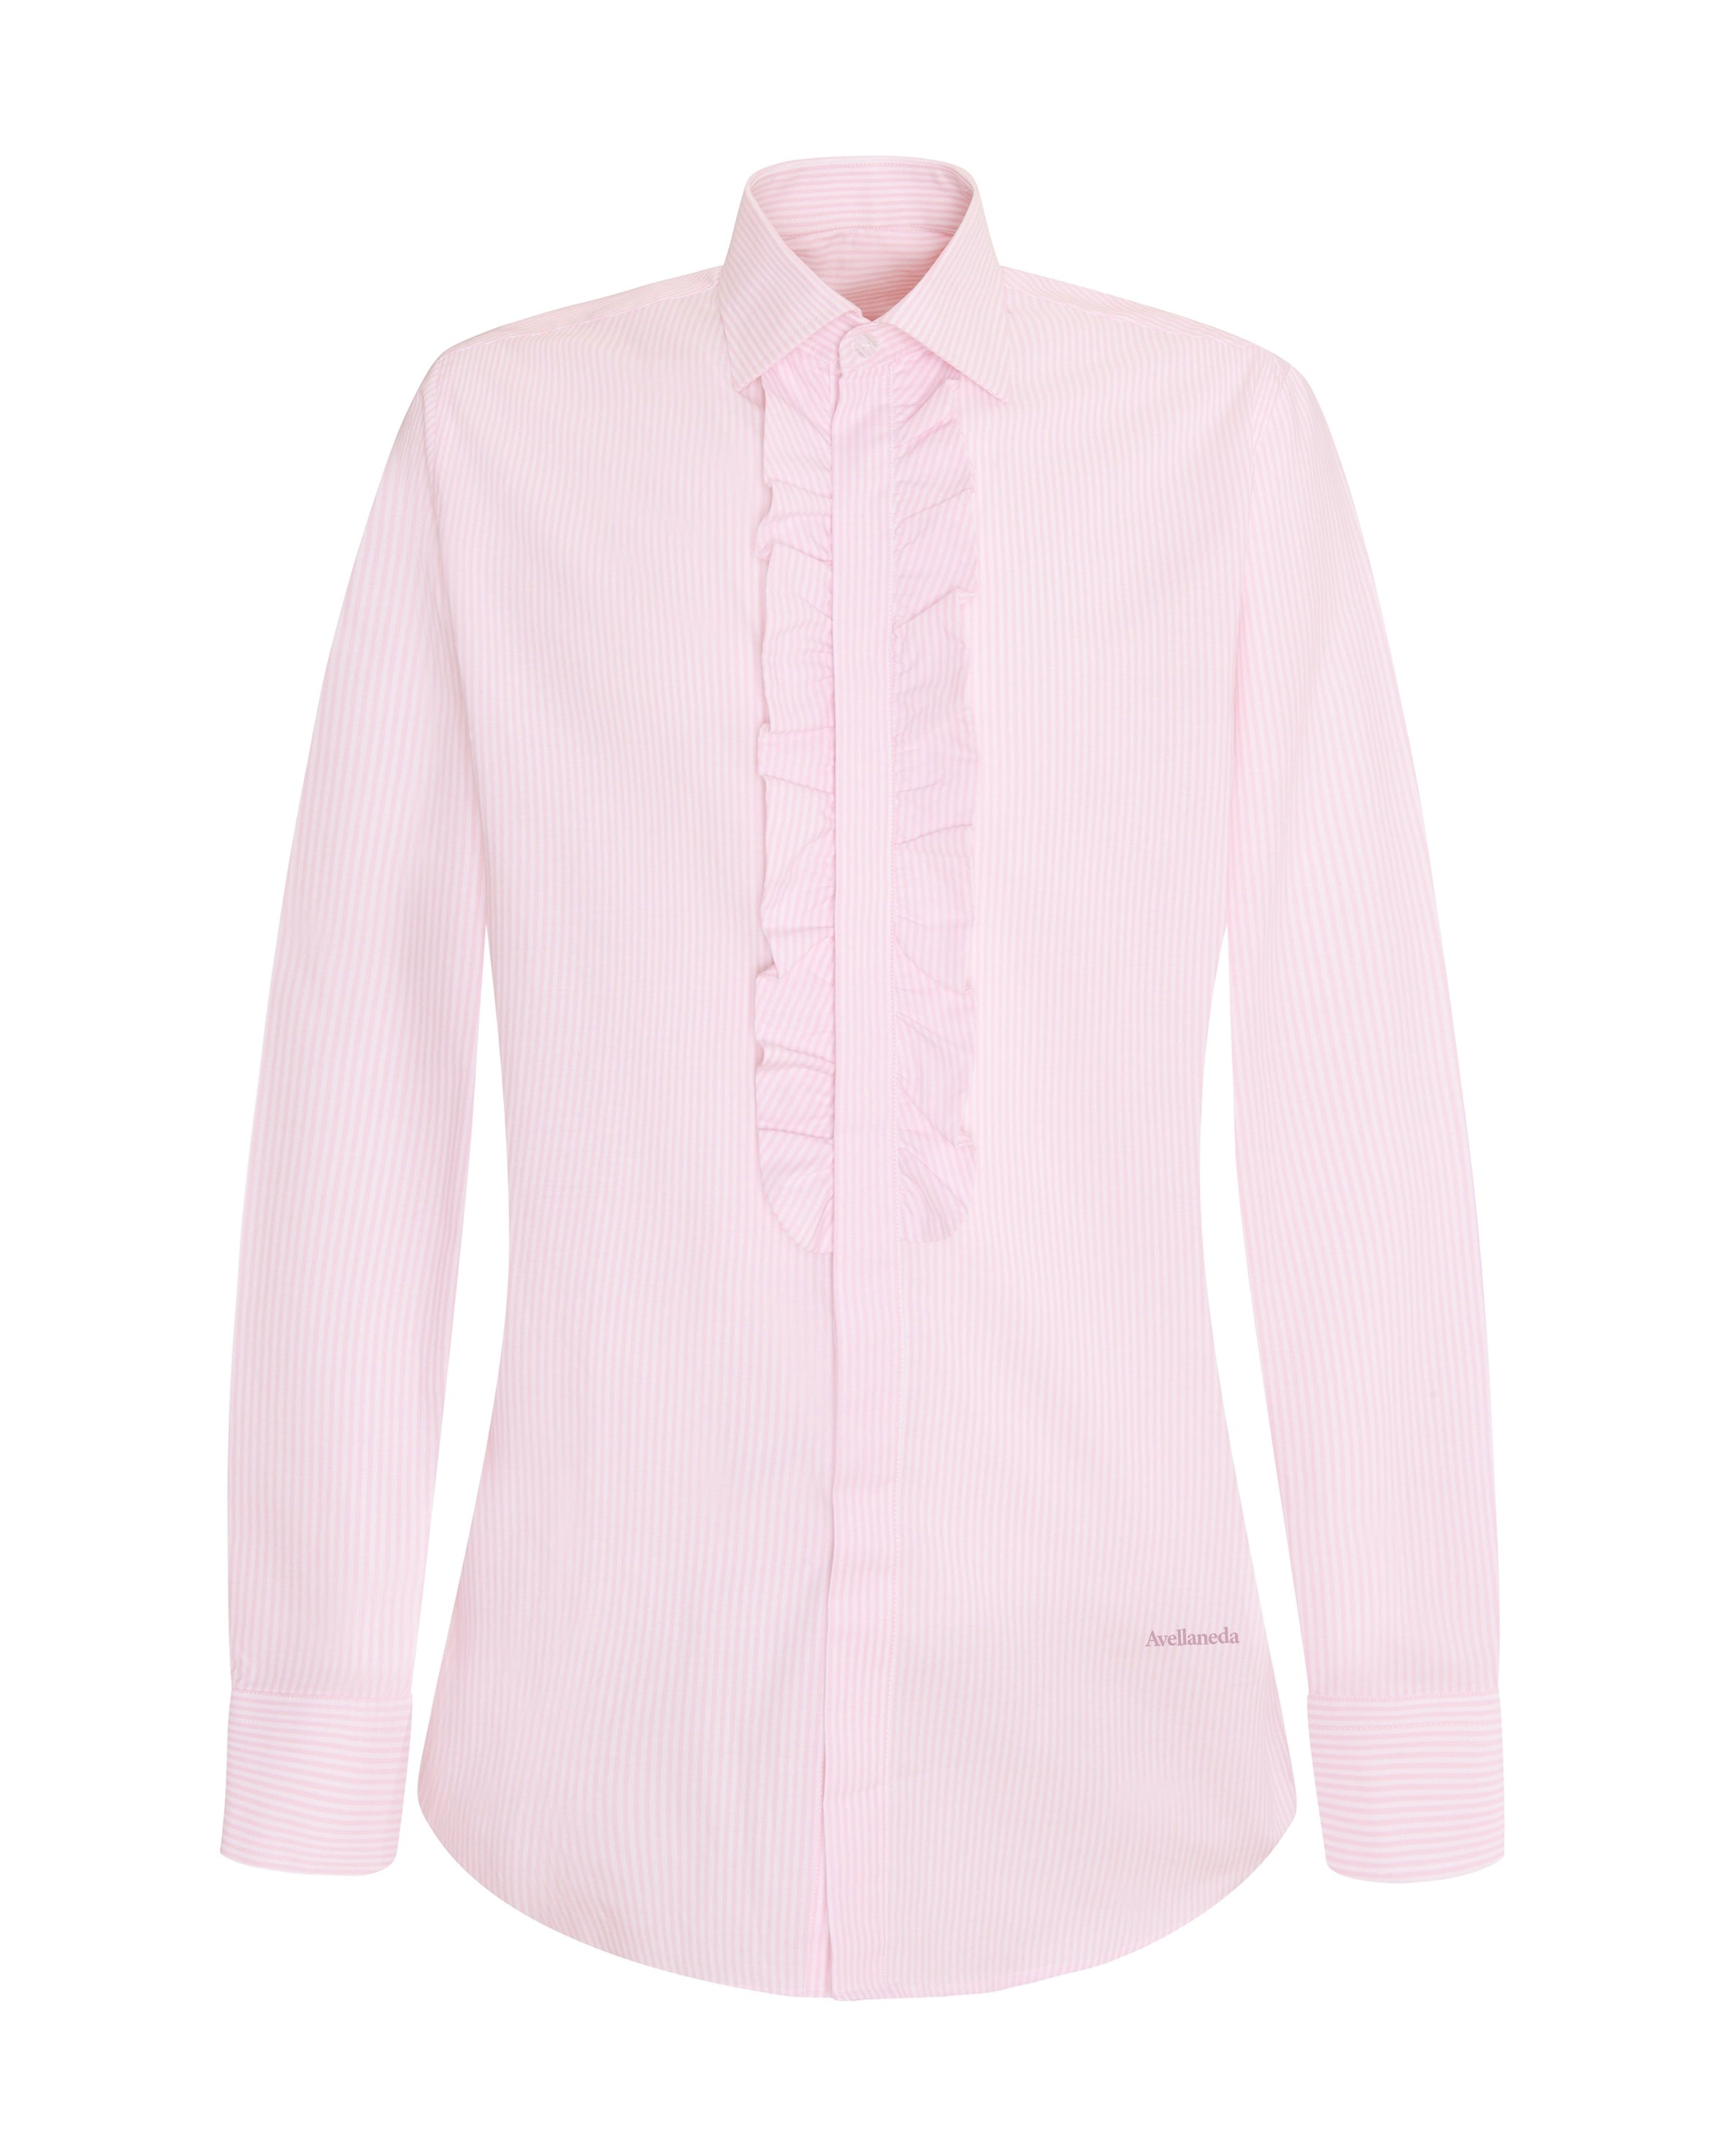 WOMEN'S RUFFLED PINK STRIPED SHIRT